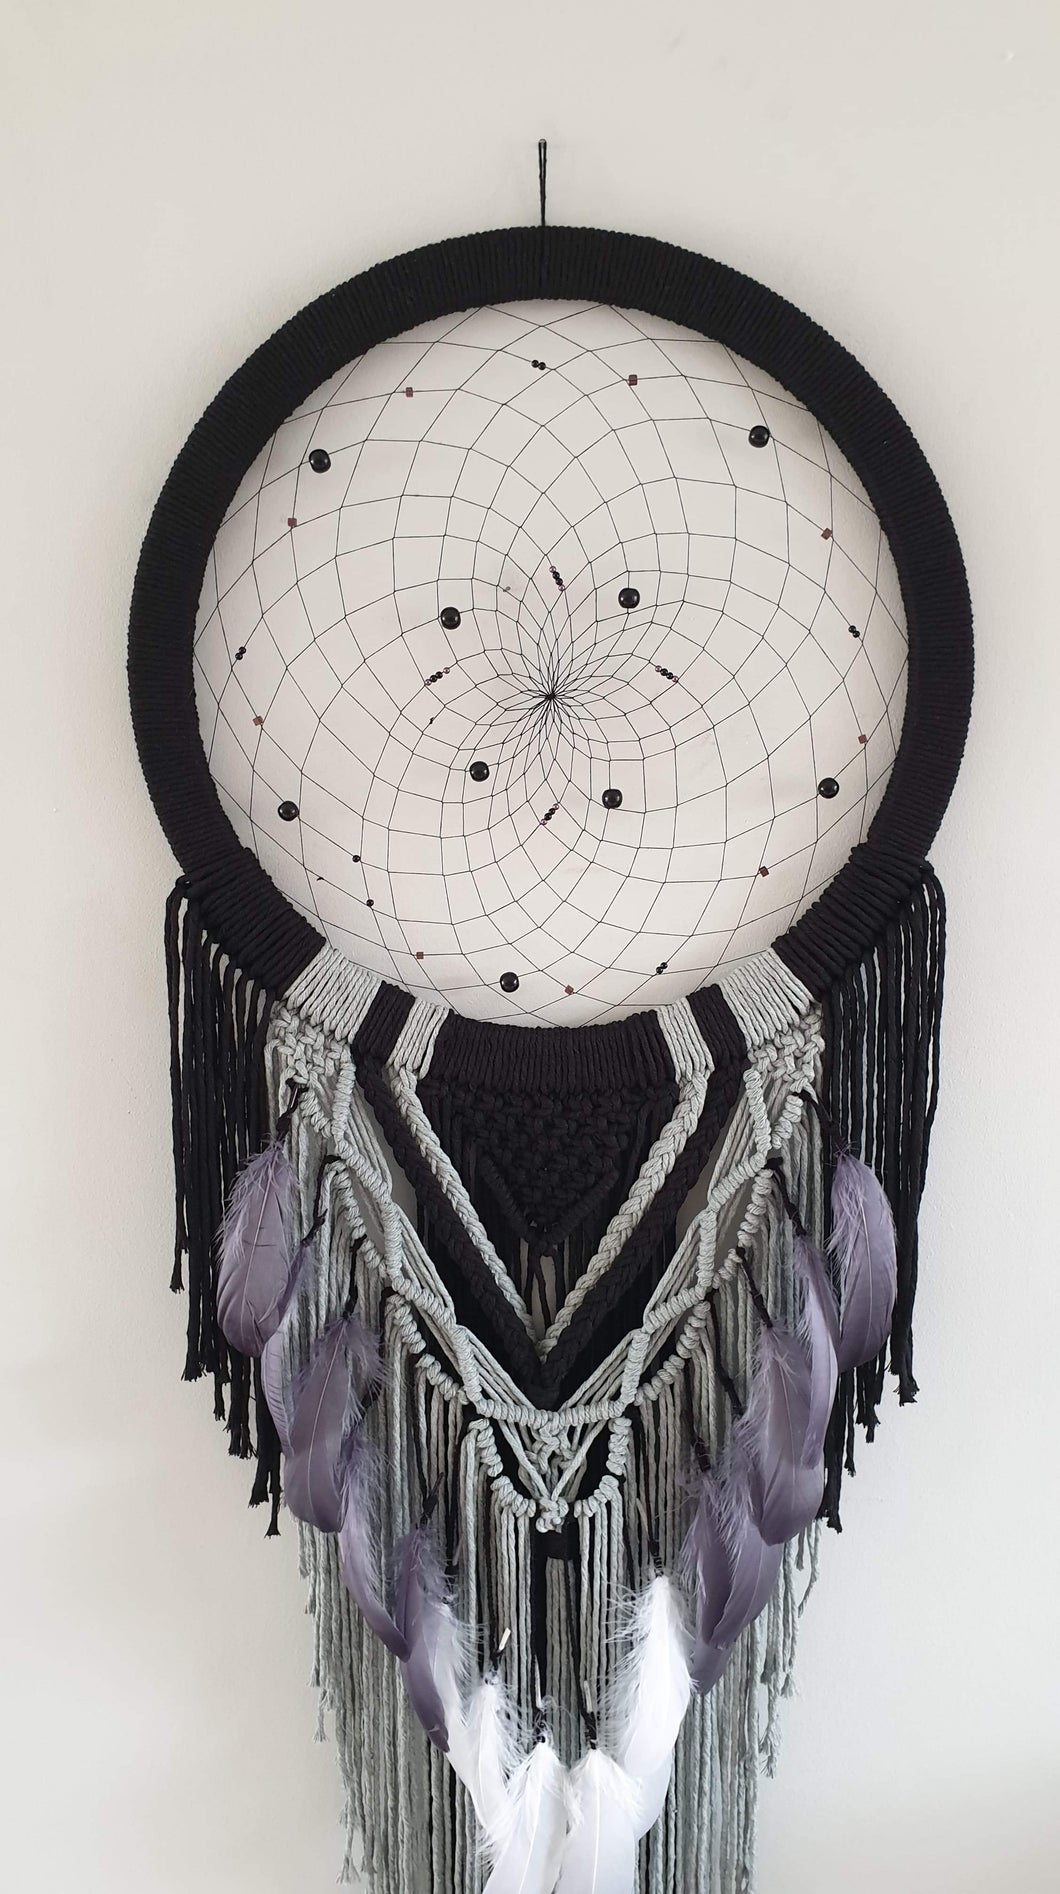 Beautifully detailed gothic dream catcher